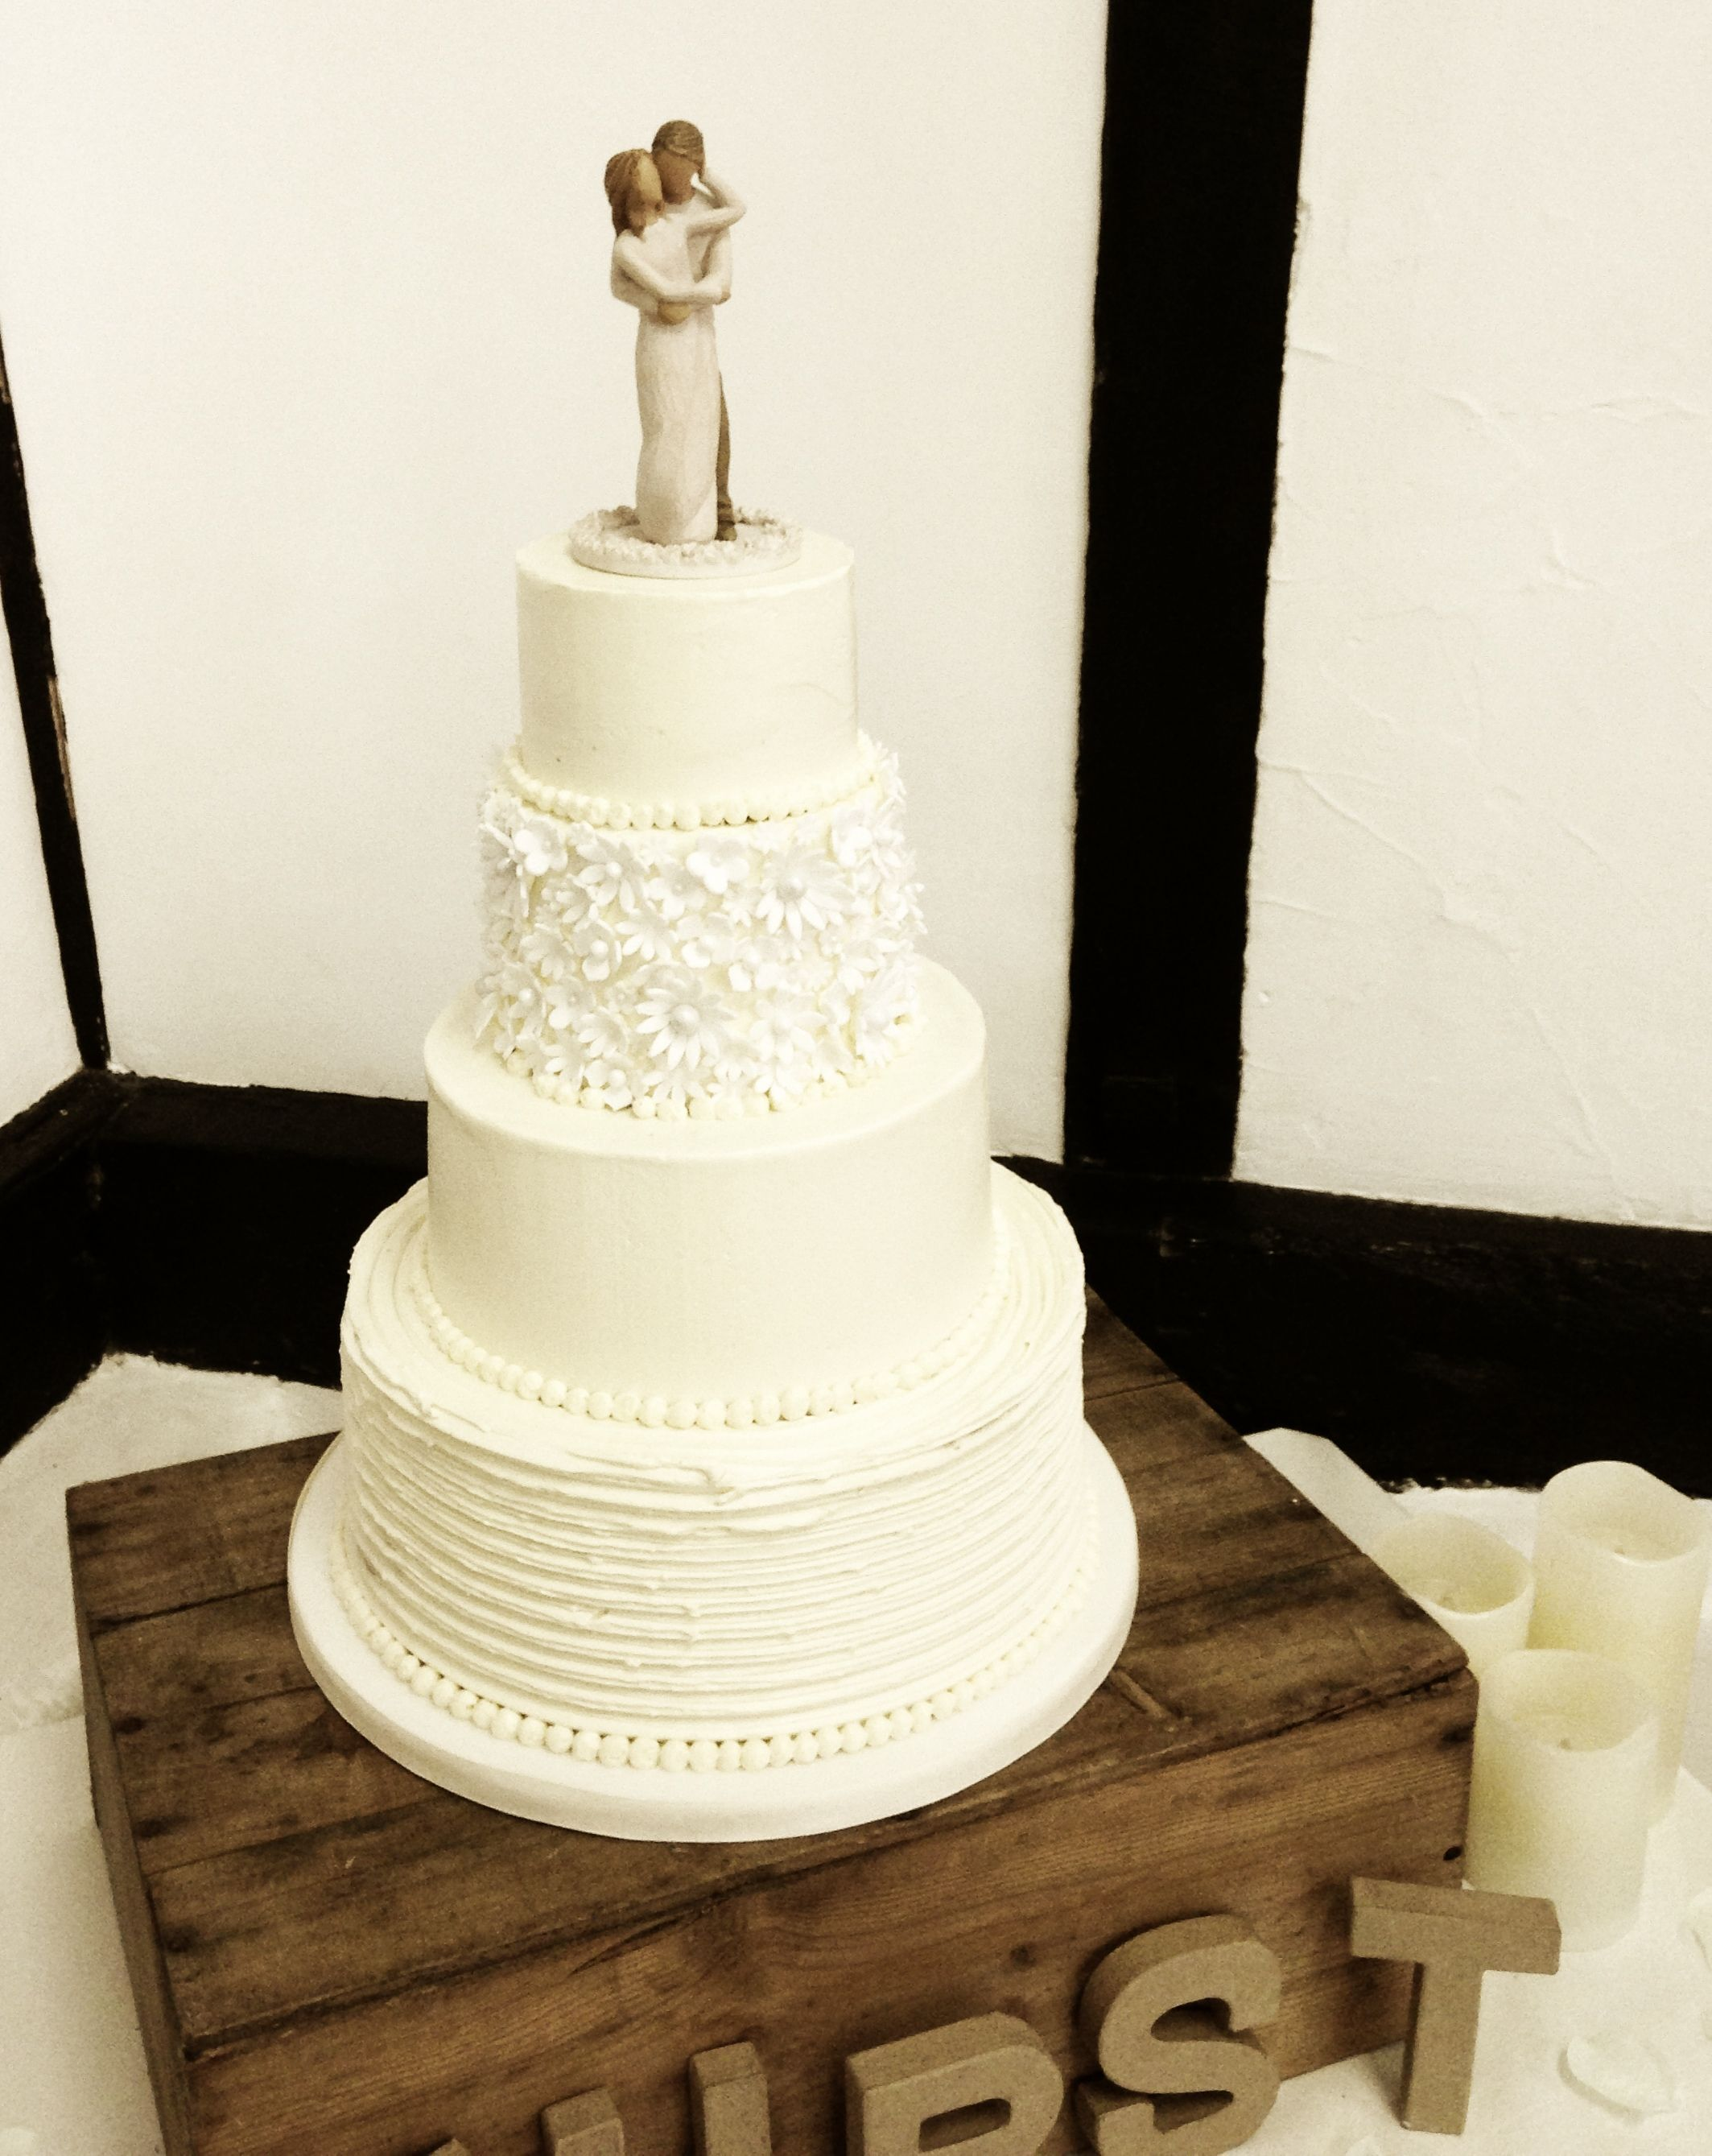 Rustic Wedding Cake With Willow Tree Topper Displayed On An Old Cider Crate By